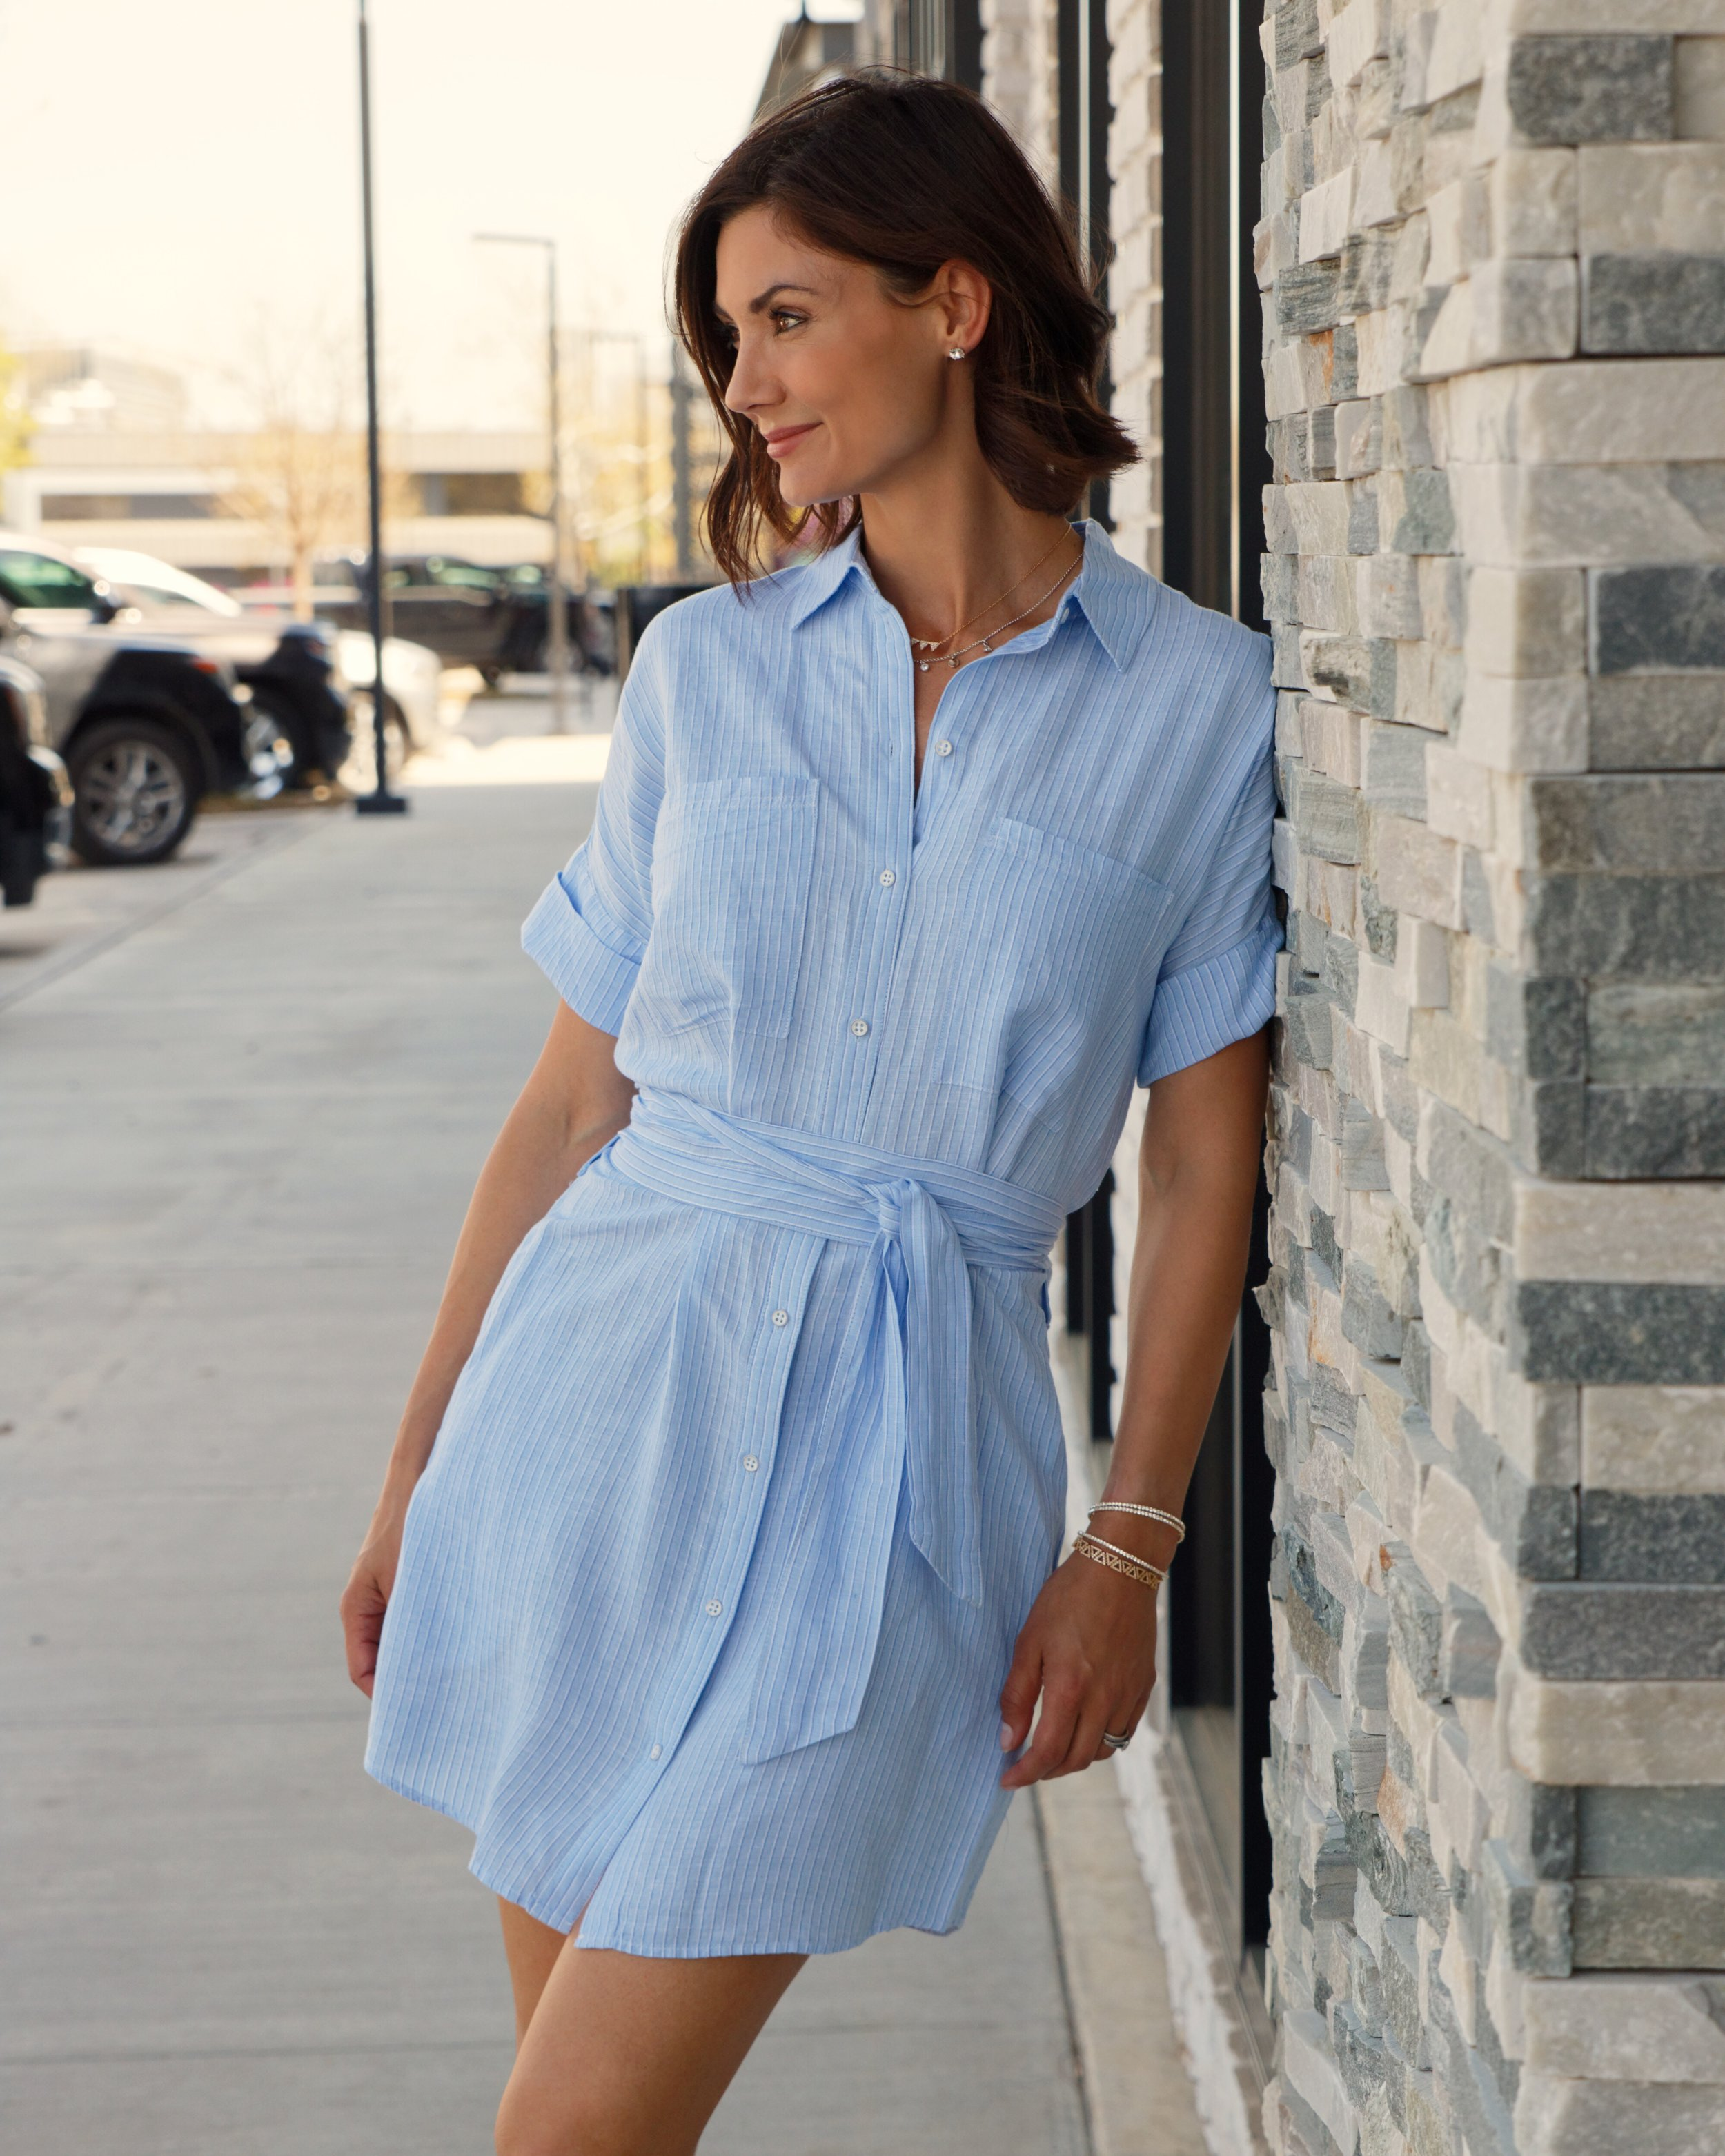 DL_BlueShirtDress_1.jpg